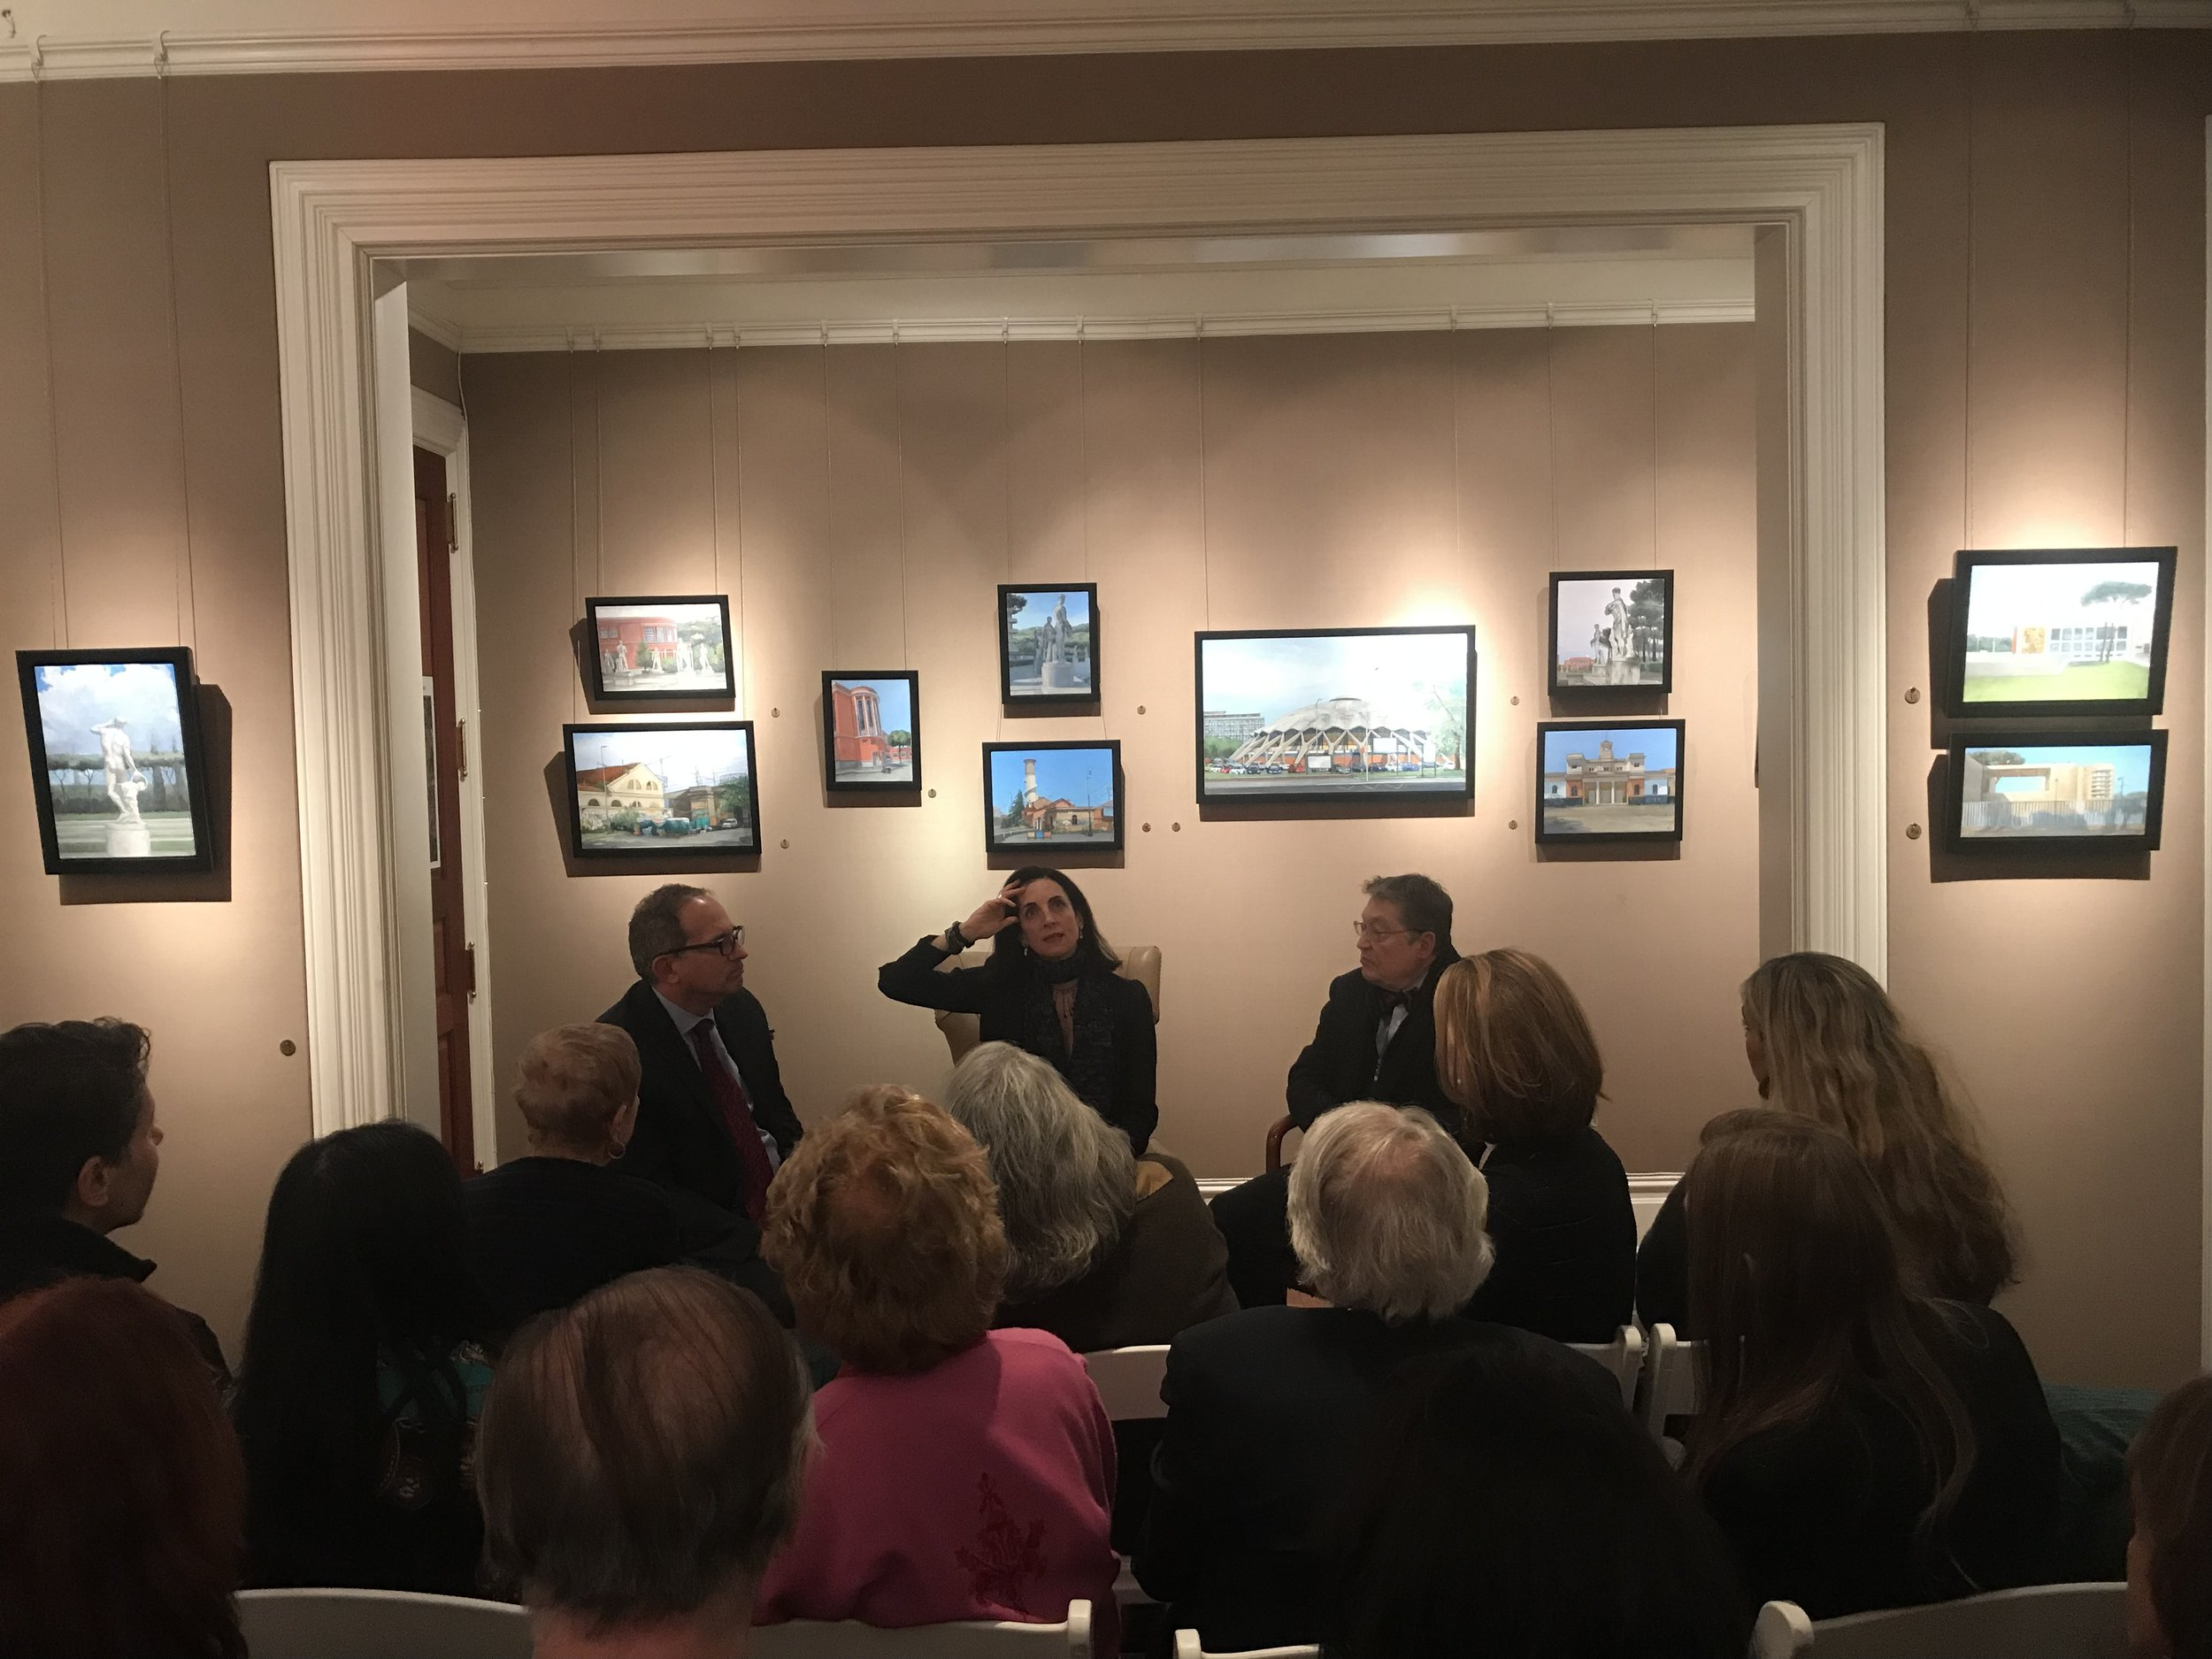 PAMELA TALESE THE ARTIST IN CONVERSATION WITH ROBERT SIMON AND LUIGI BALLERINI - View 1